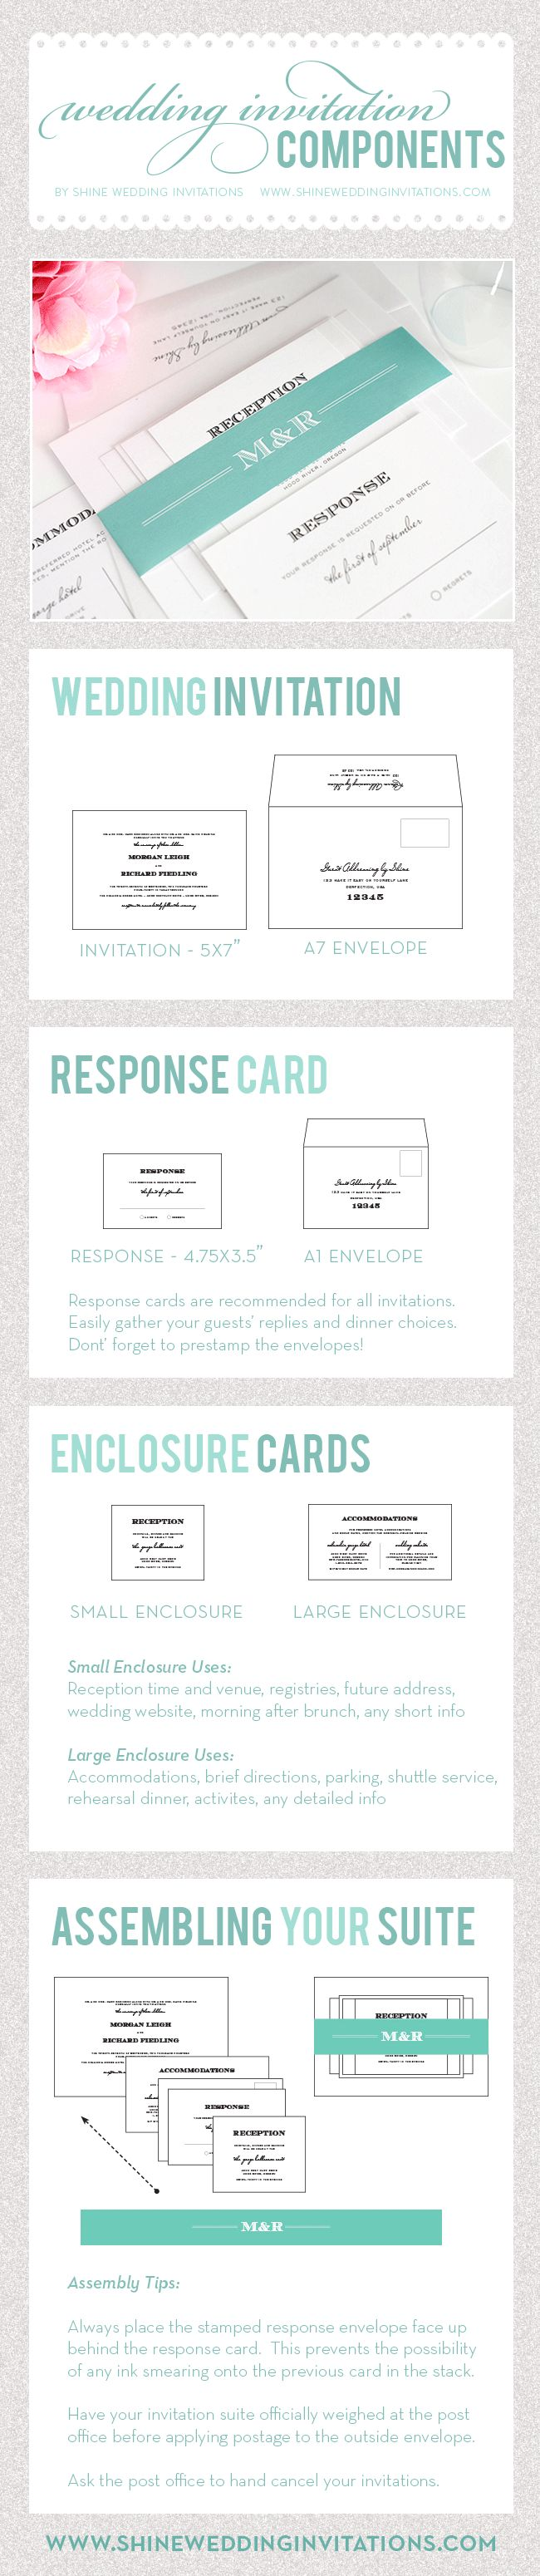 Wedding Invitation Checklist 5 10072017nz